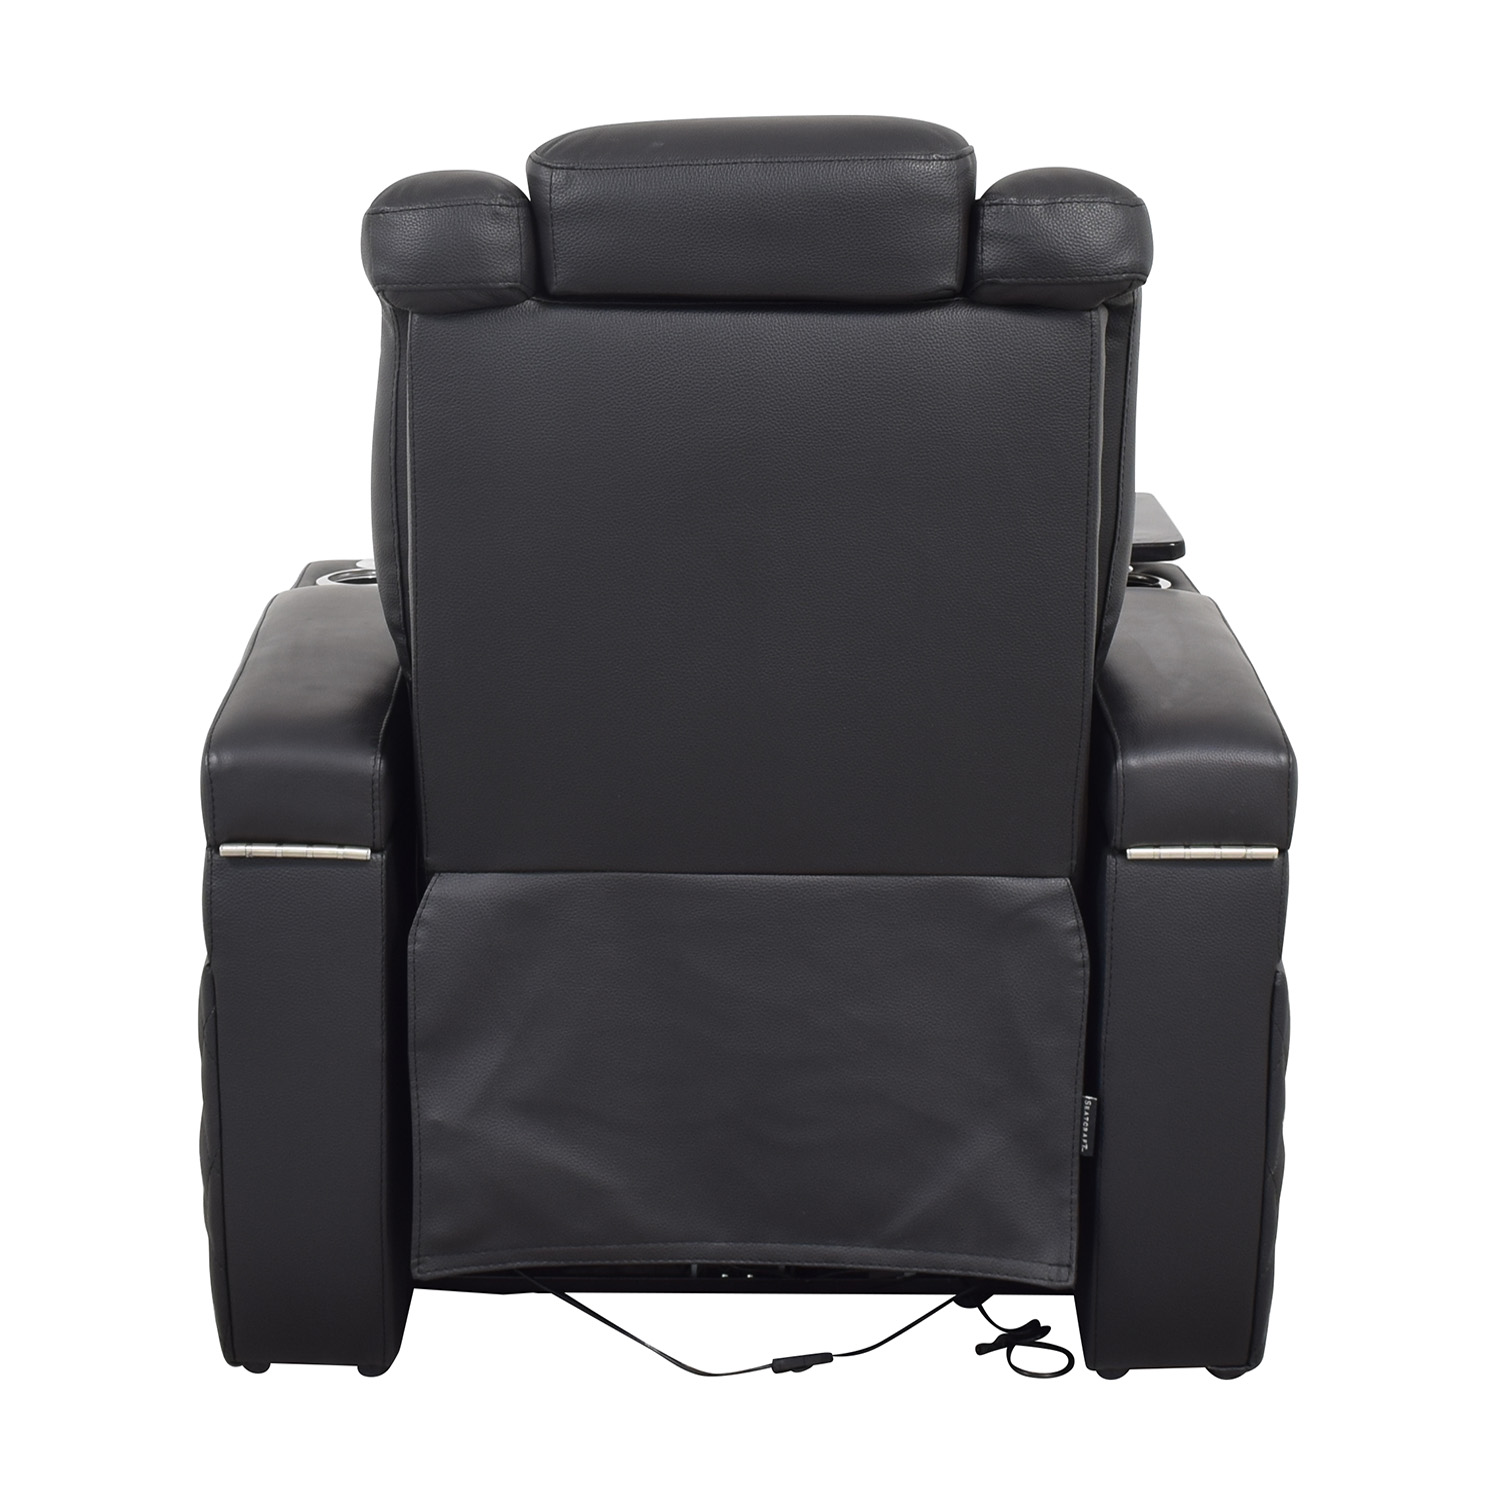 Seatcraft Seatcraft Diamante Home Theater Seating Leather Power Recliner price